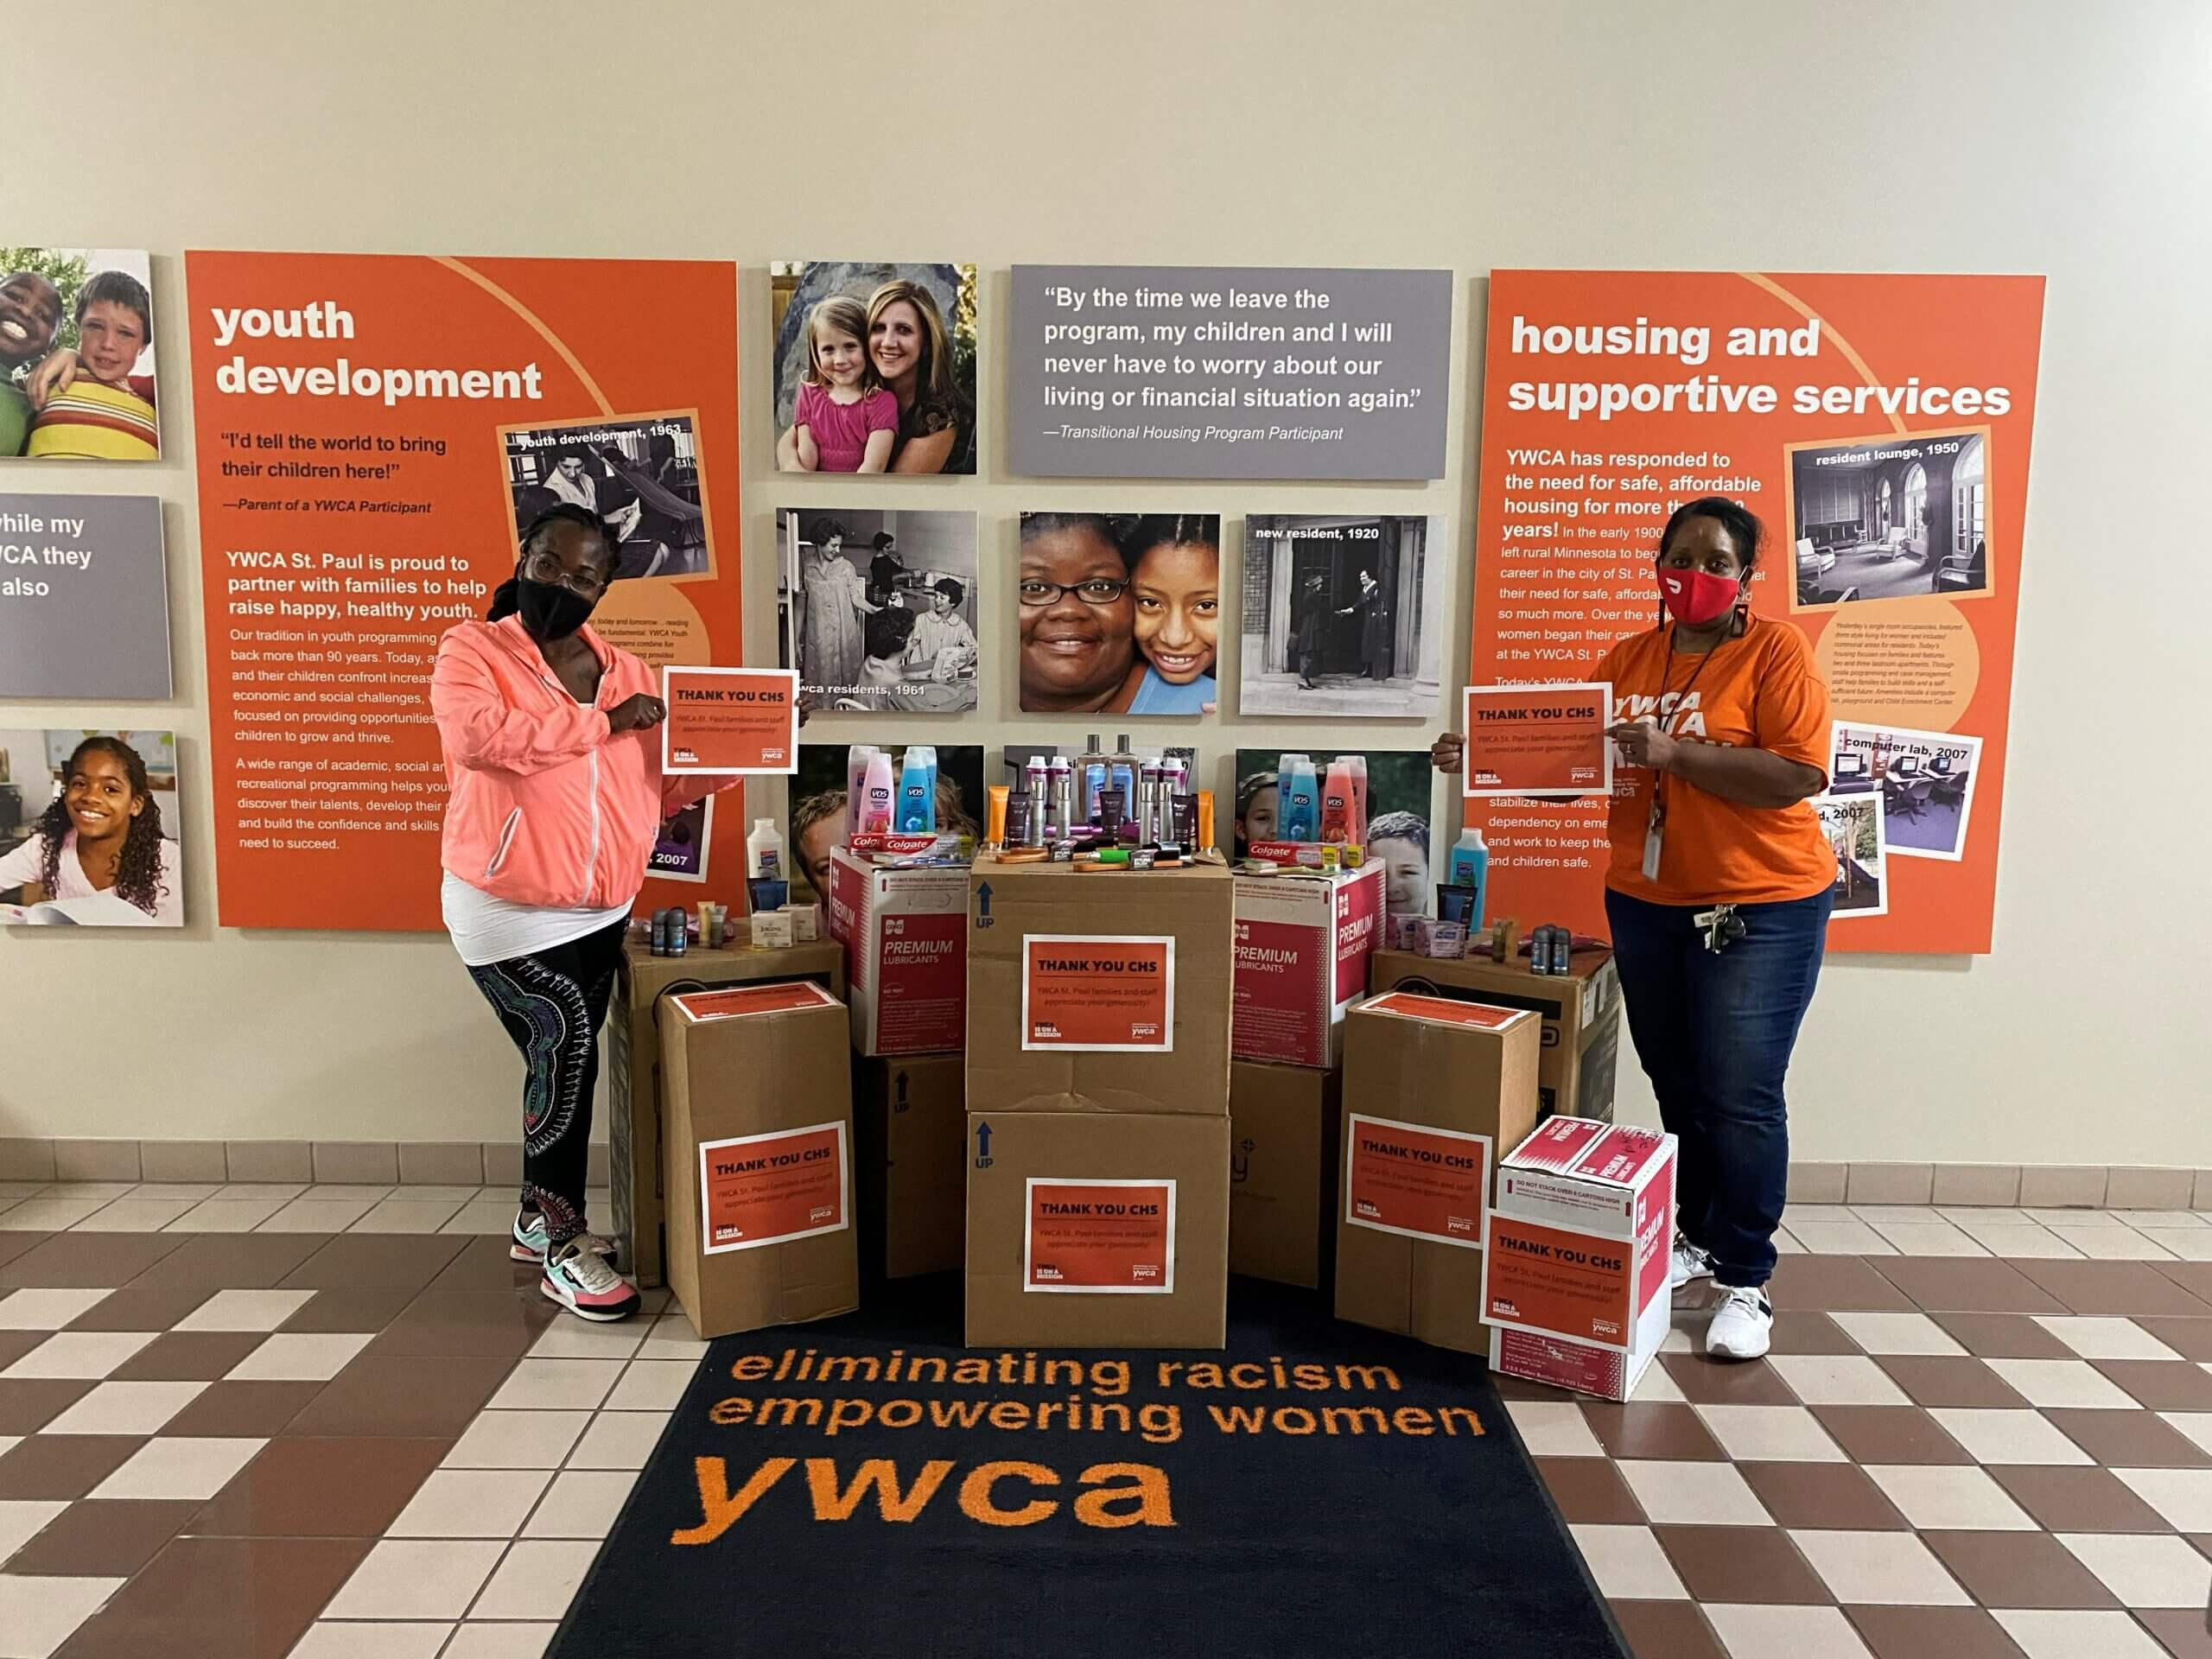 Two YW Staffers (African-American women) stand beside several boxes of personal hygiene items